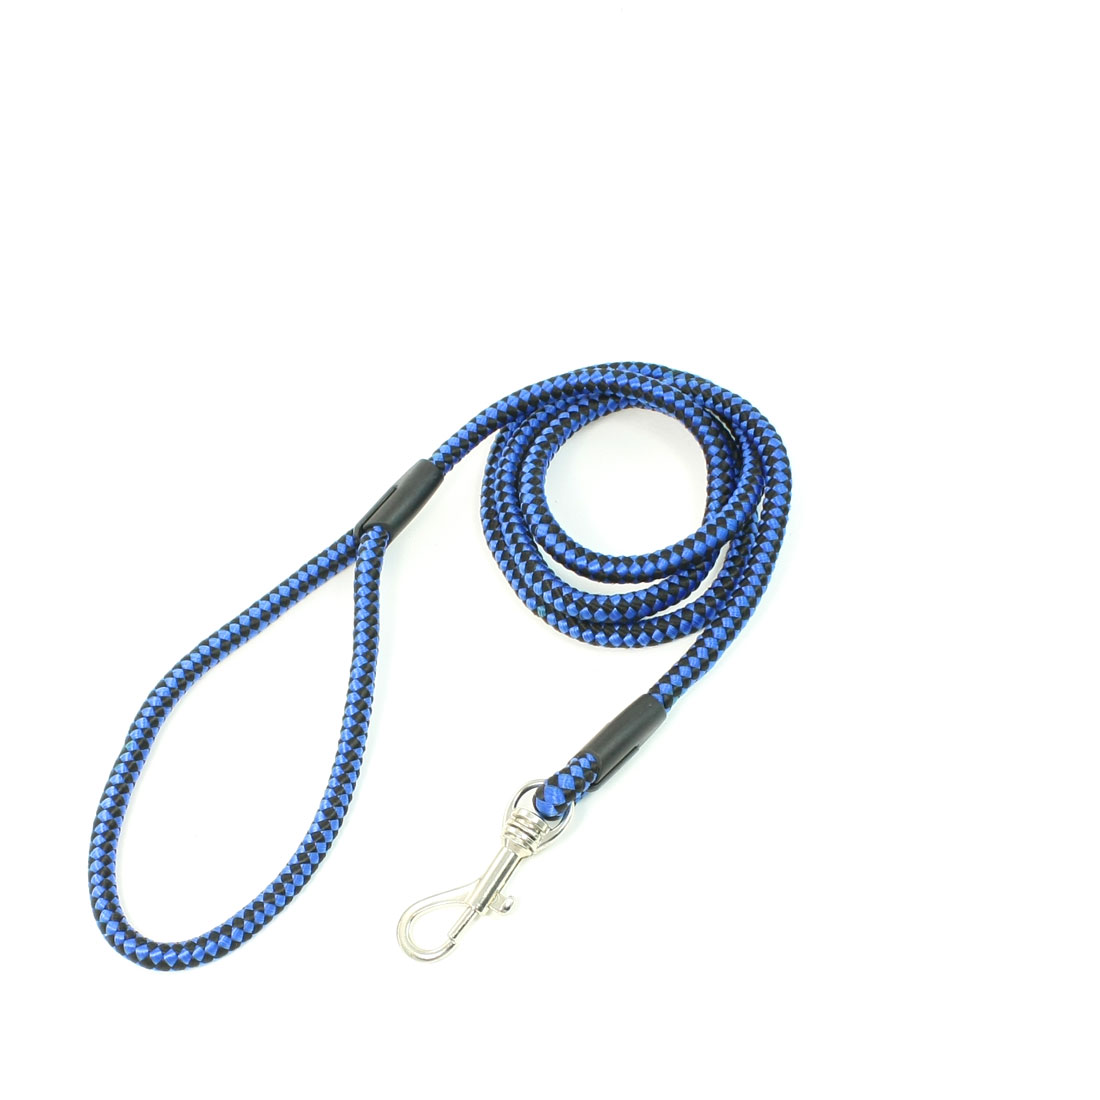 "Puppy Pet Lobster Clasp Black Blue Nylon Rope Dog Lead Leash 0.8"" Dia"